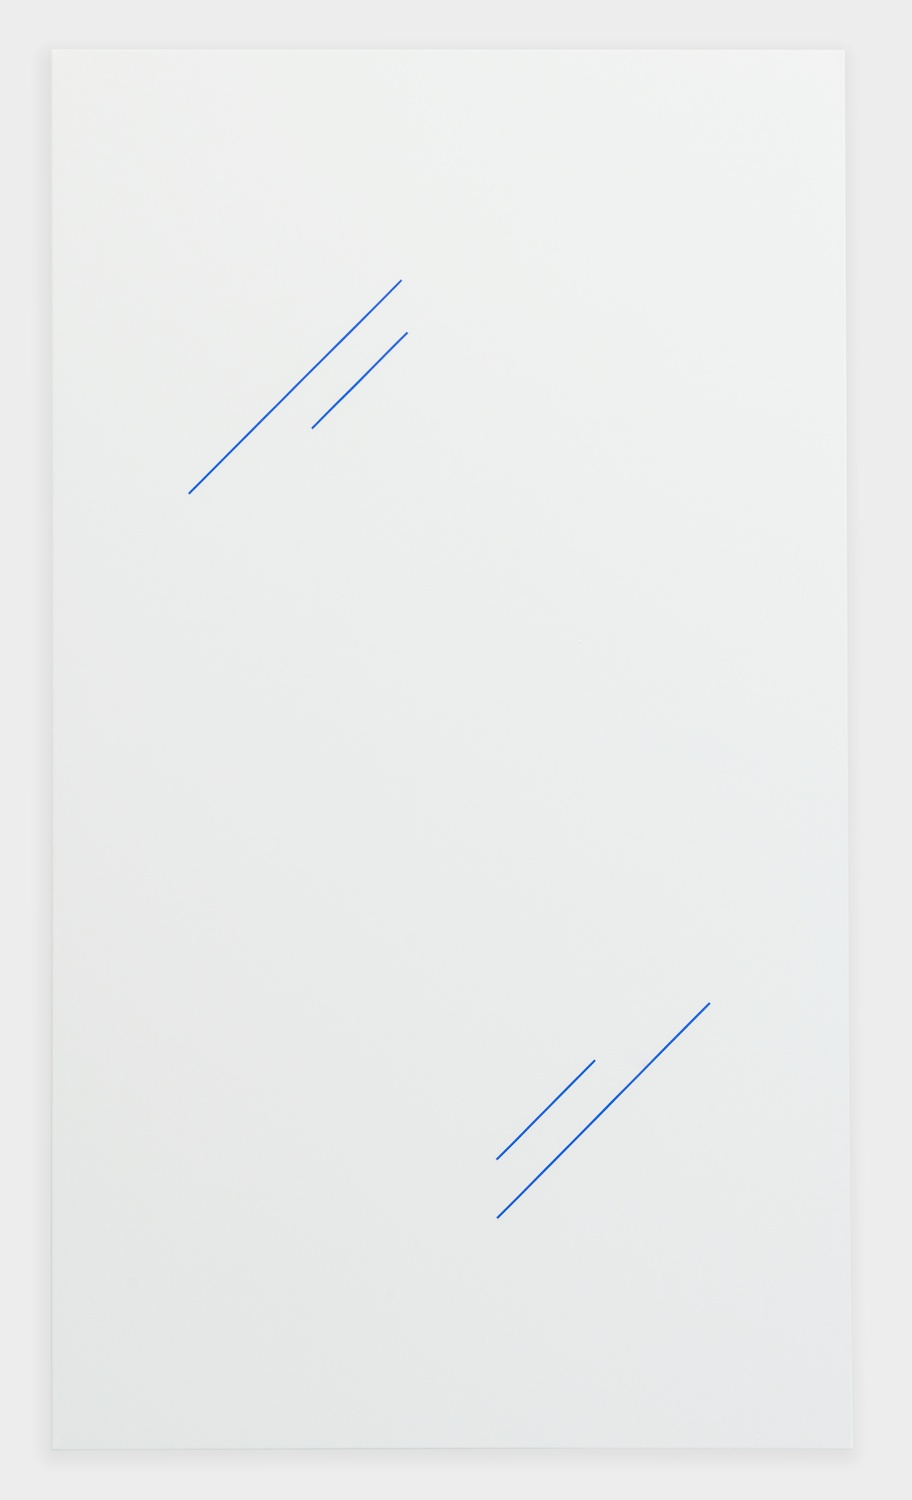 Paul Cowan  BCEAUSE THE SKY IS BULE  2013 Chroma-key Blue Paint On Canvas 72h x 41w in  PC085